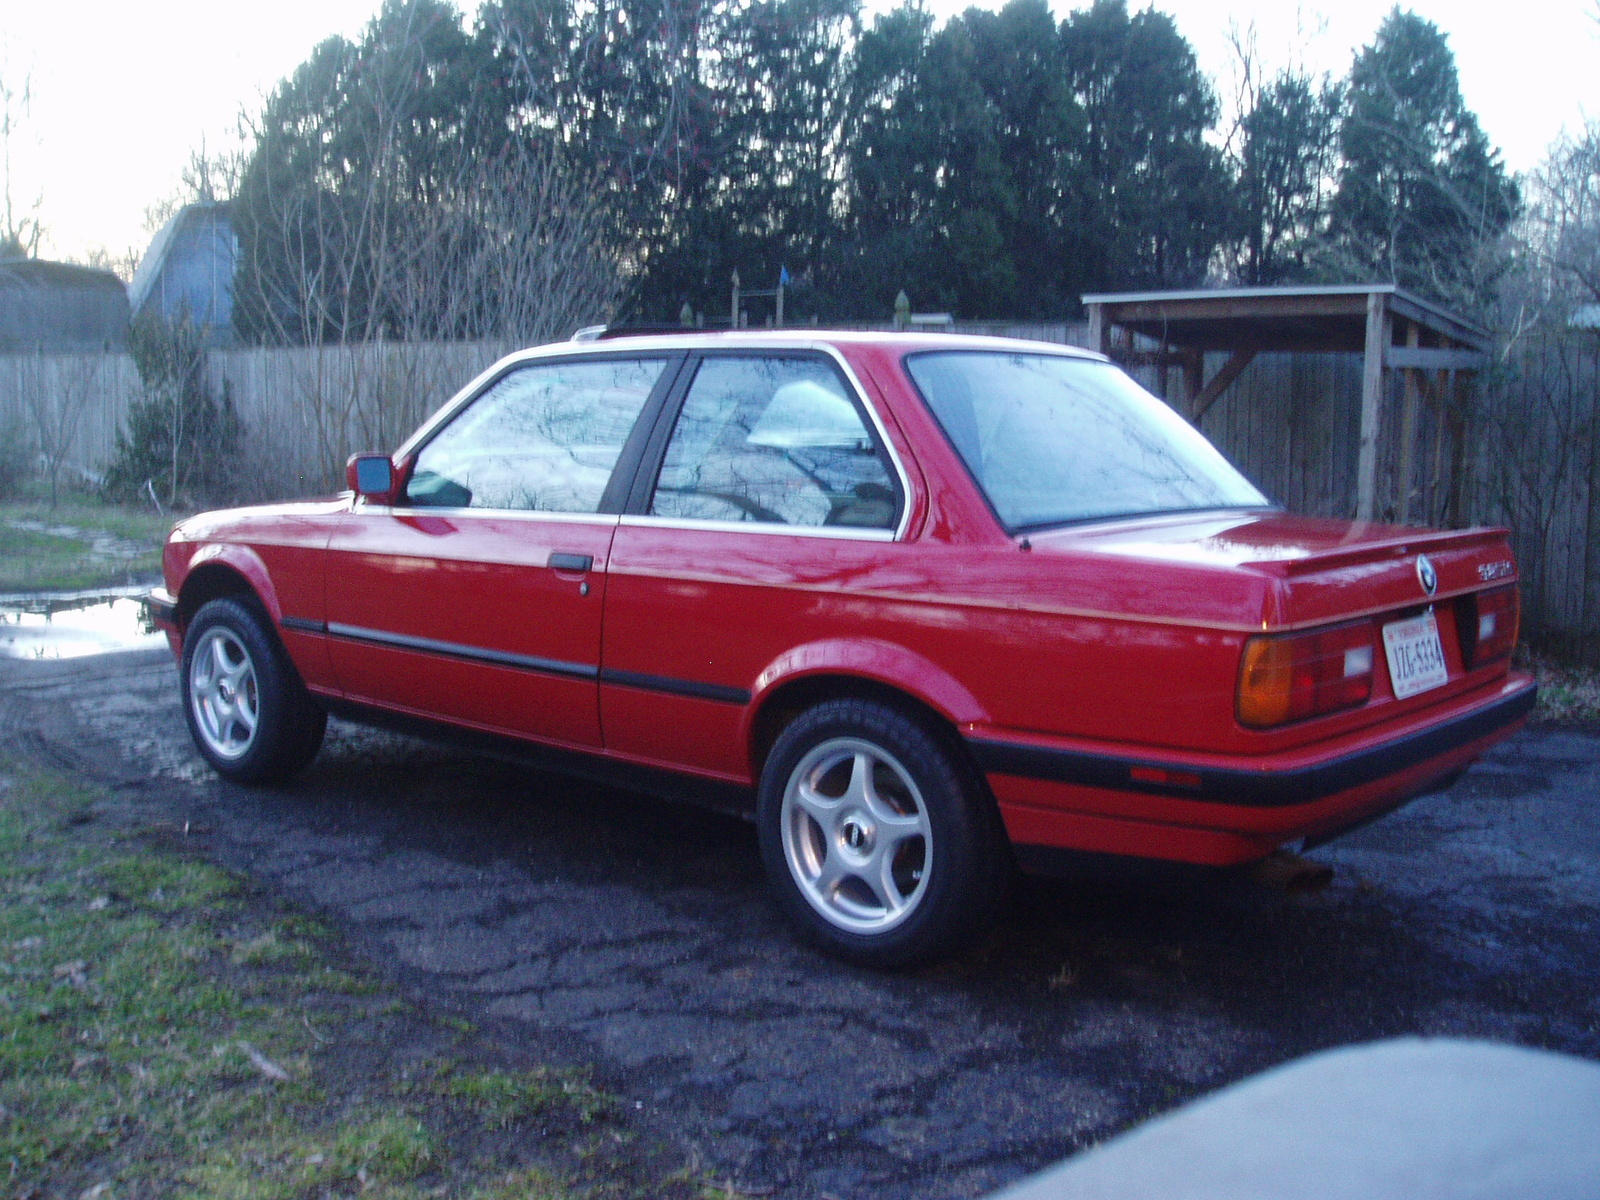 BMW 3 series 325is 1989 photo - 3